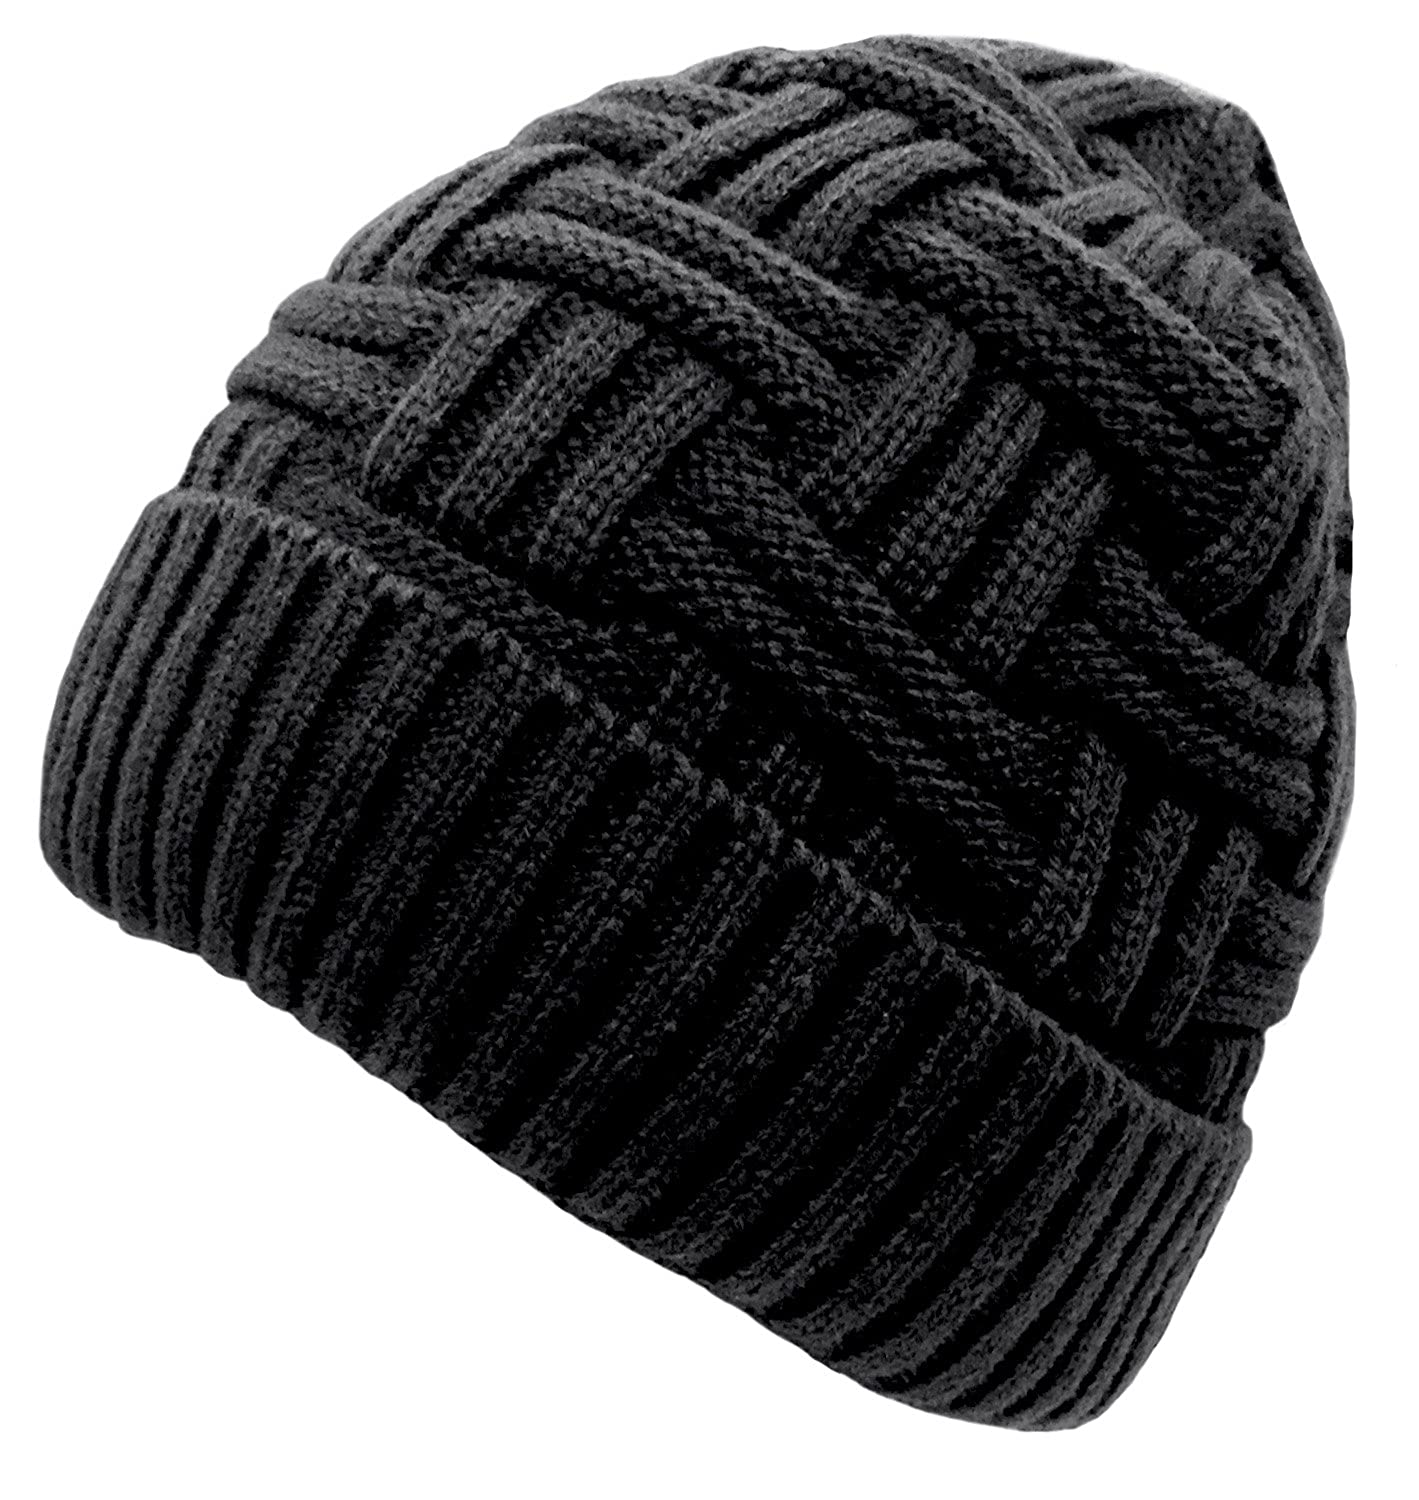 e7c55748af9 Material  The winter knitted beanie hat made of premium quality stretchy